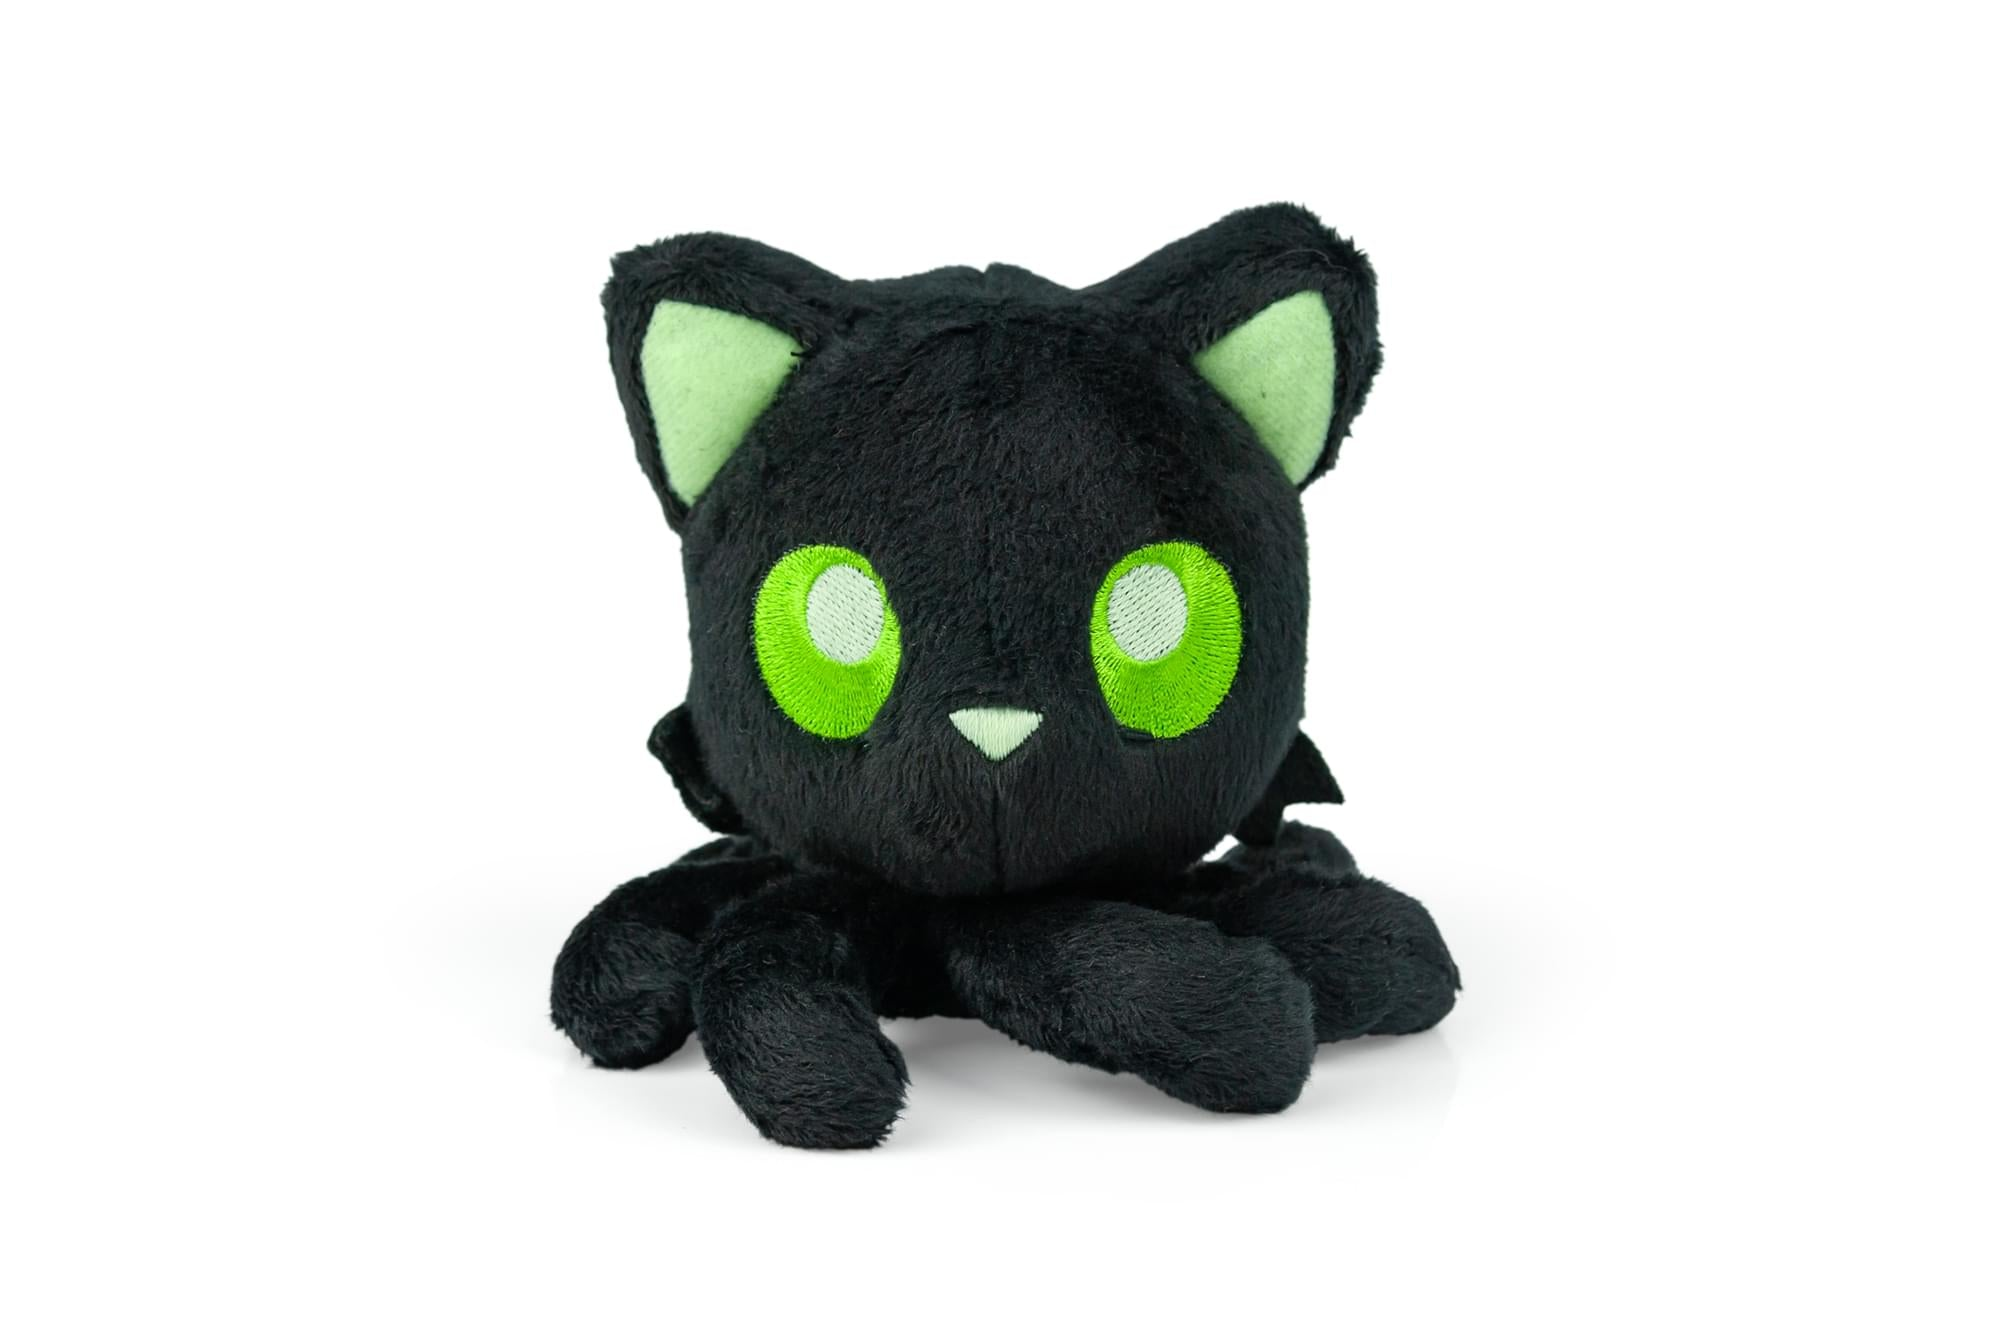 Tentacle Kitty Series Little One Moonlight Plush Collectible | 4 Inches Tall